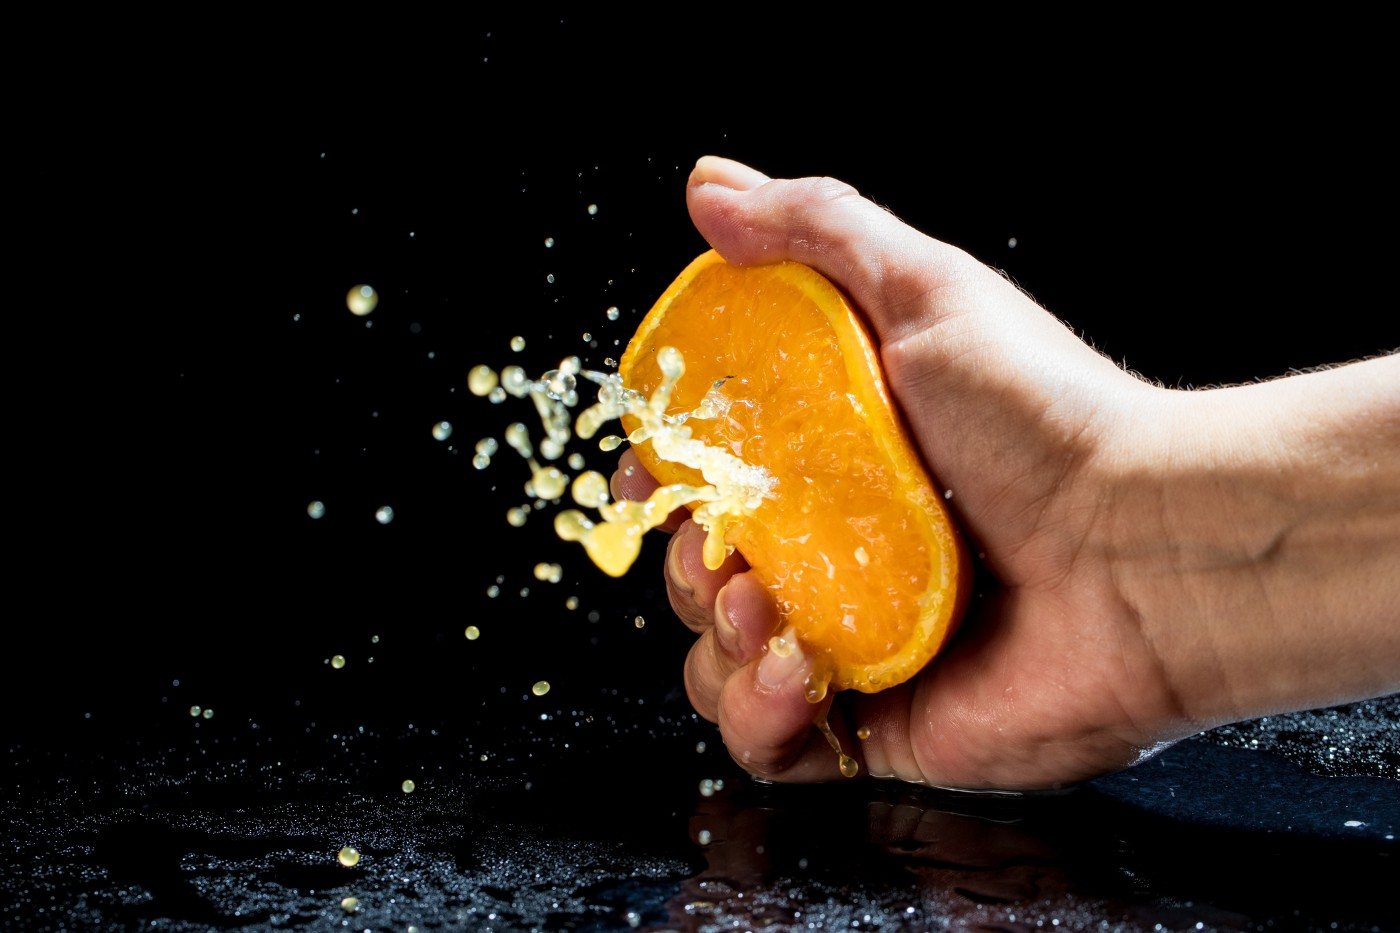 https://tickertapecdn.tdameritrade.com/assets/images/pages/md/Hand squeezing an orange: Earnings volatility crush